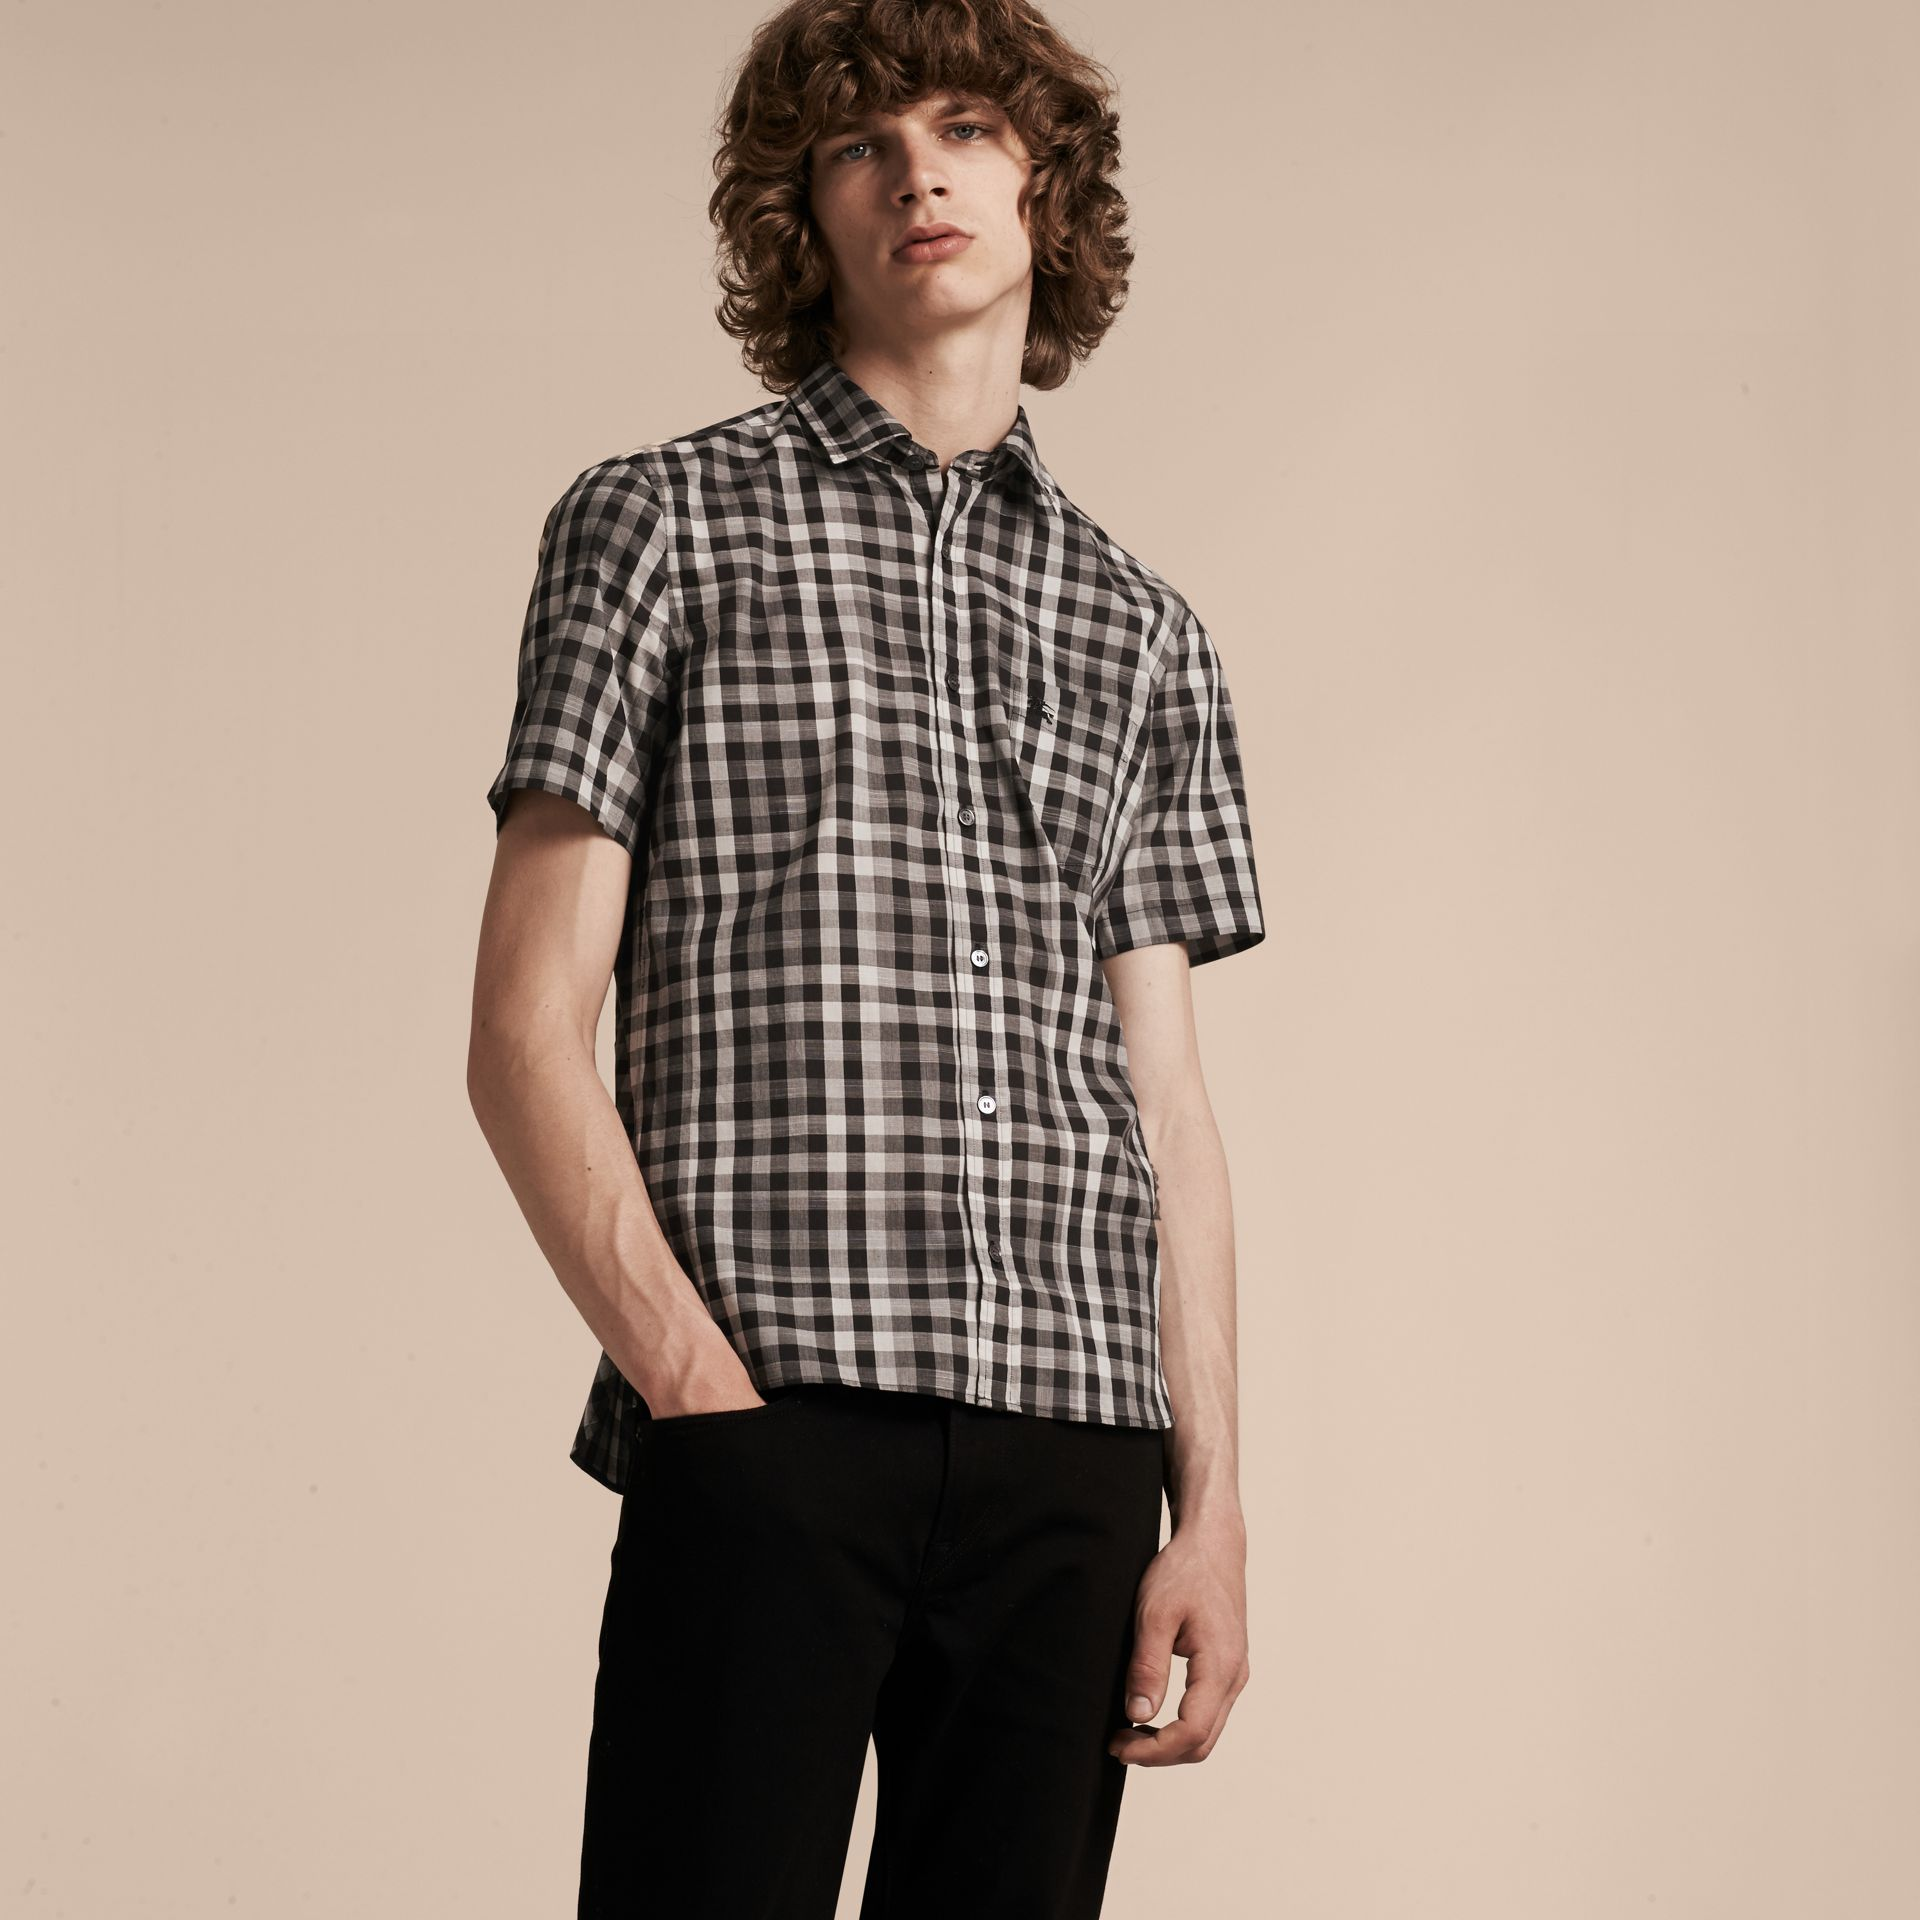 Black Short-sleeved Gingham Cotton Shirt Black - gallery image 4